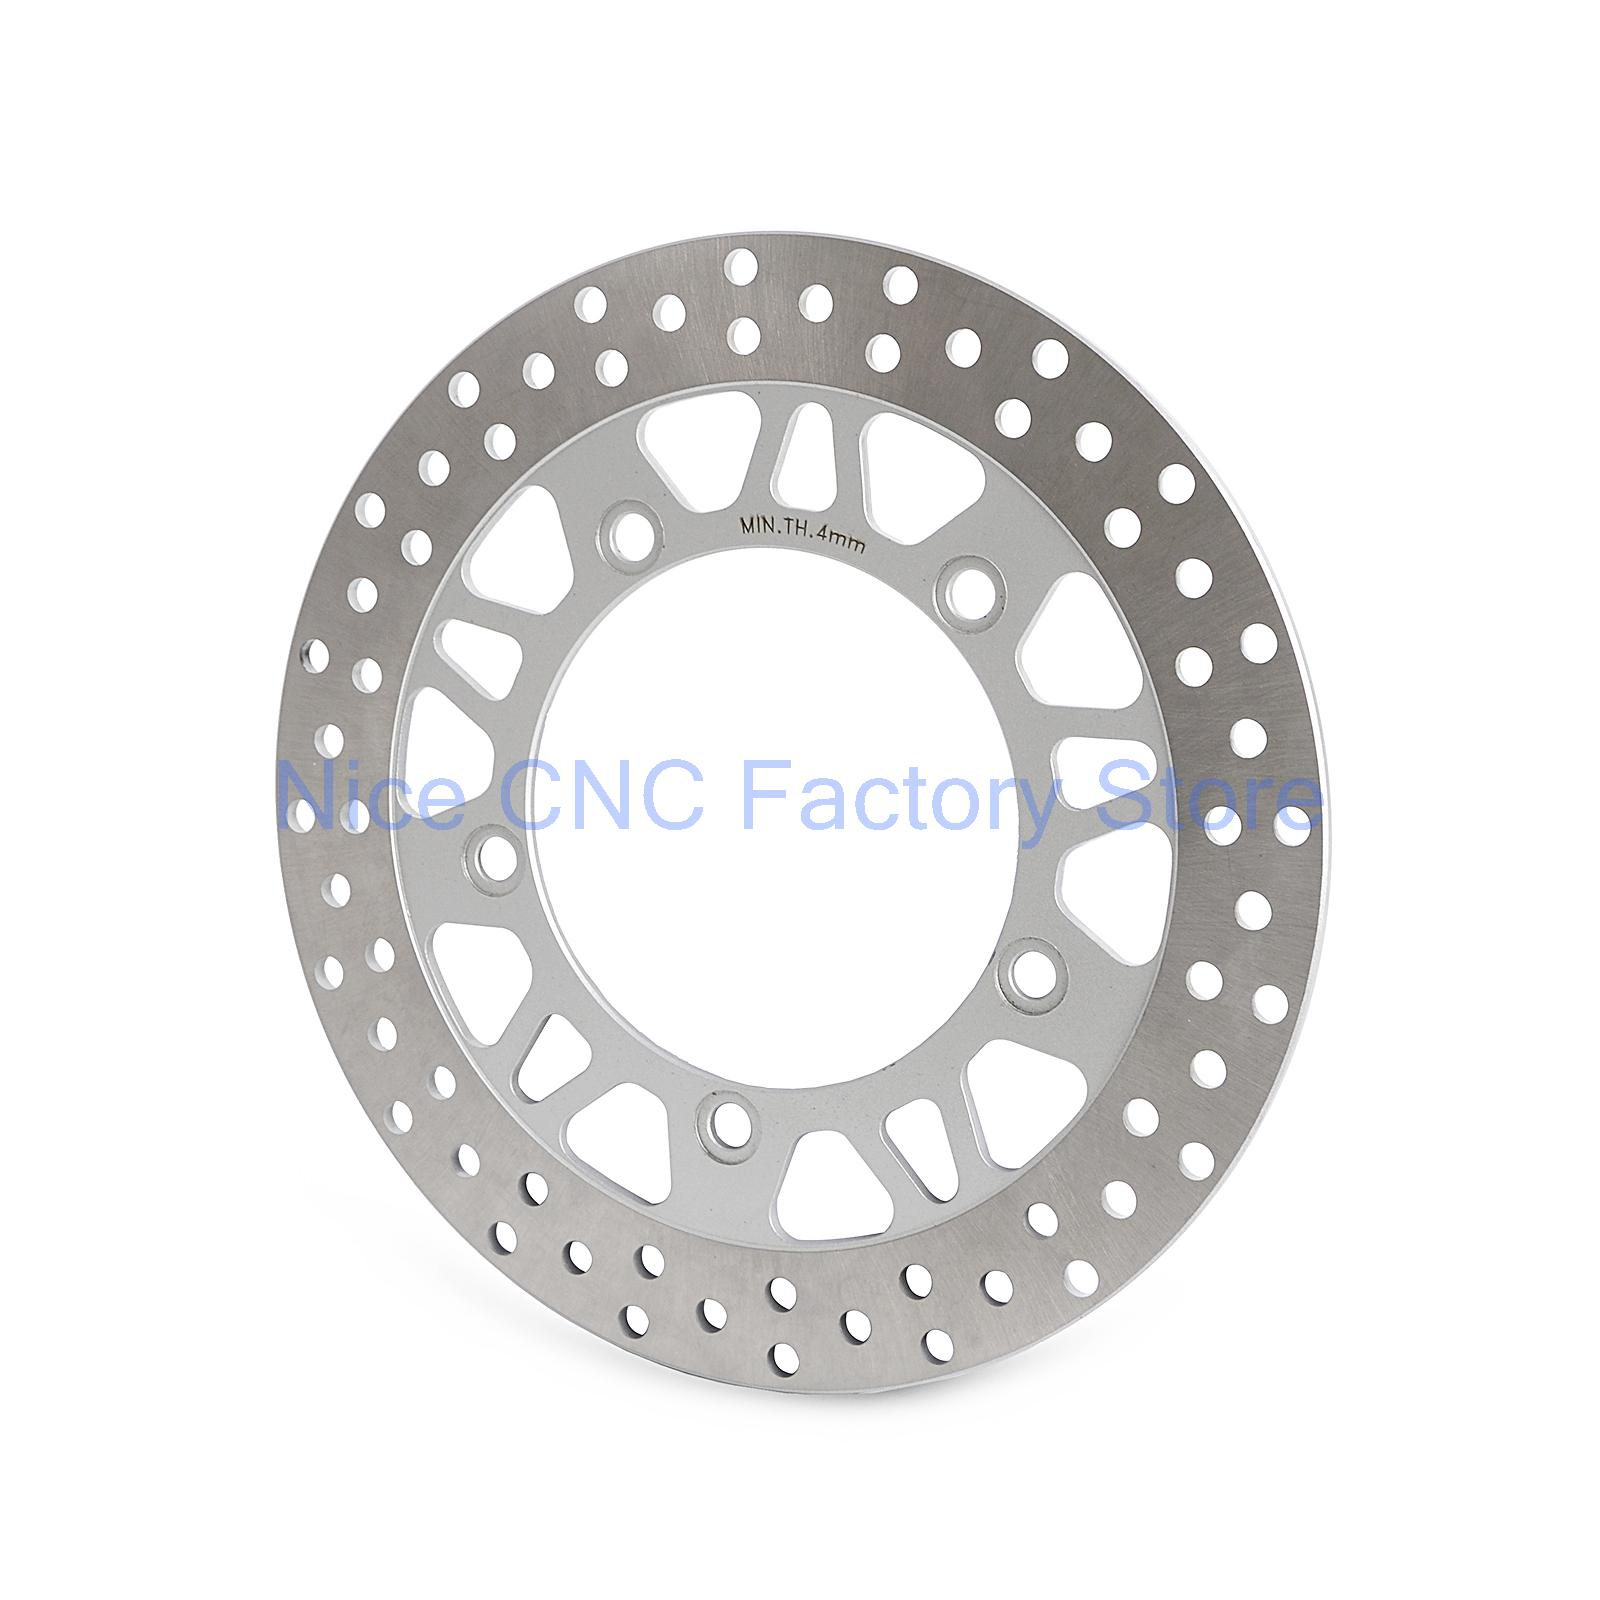 Floating Front Brake Disc Rotor Fits For Suzuki AN250 Skywave 2007 2008 SN250 2003-2006 AN400 Burgman Skywave 07-13 AN650 04-12 keoghs motorcycle brake disc brake rotor floating 260mm 82mm diameter cnc for yamaha scooter bws cygnus front disc replace